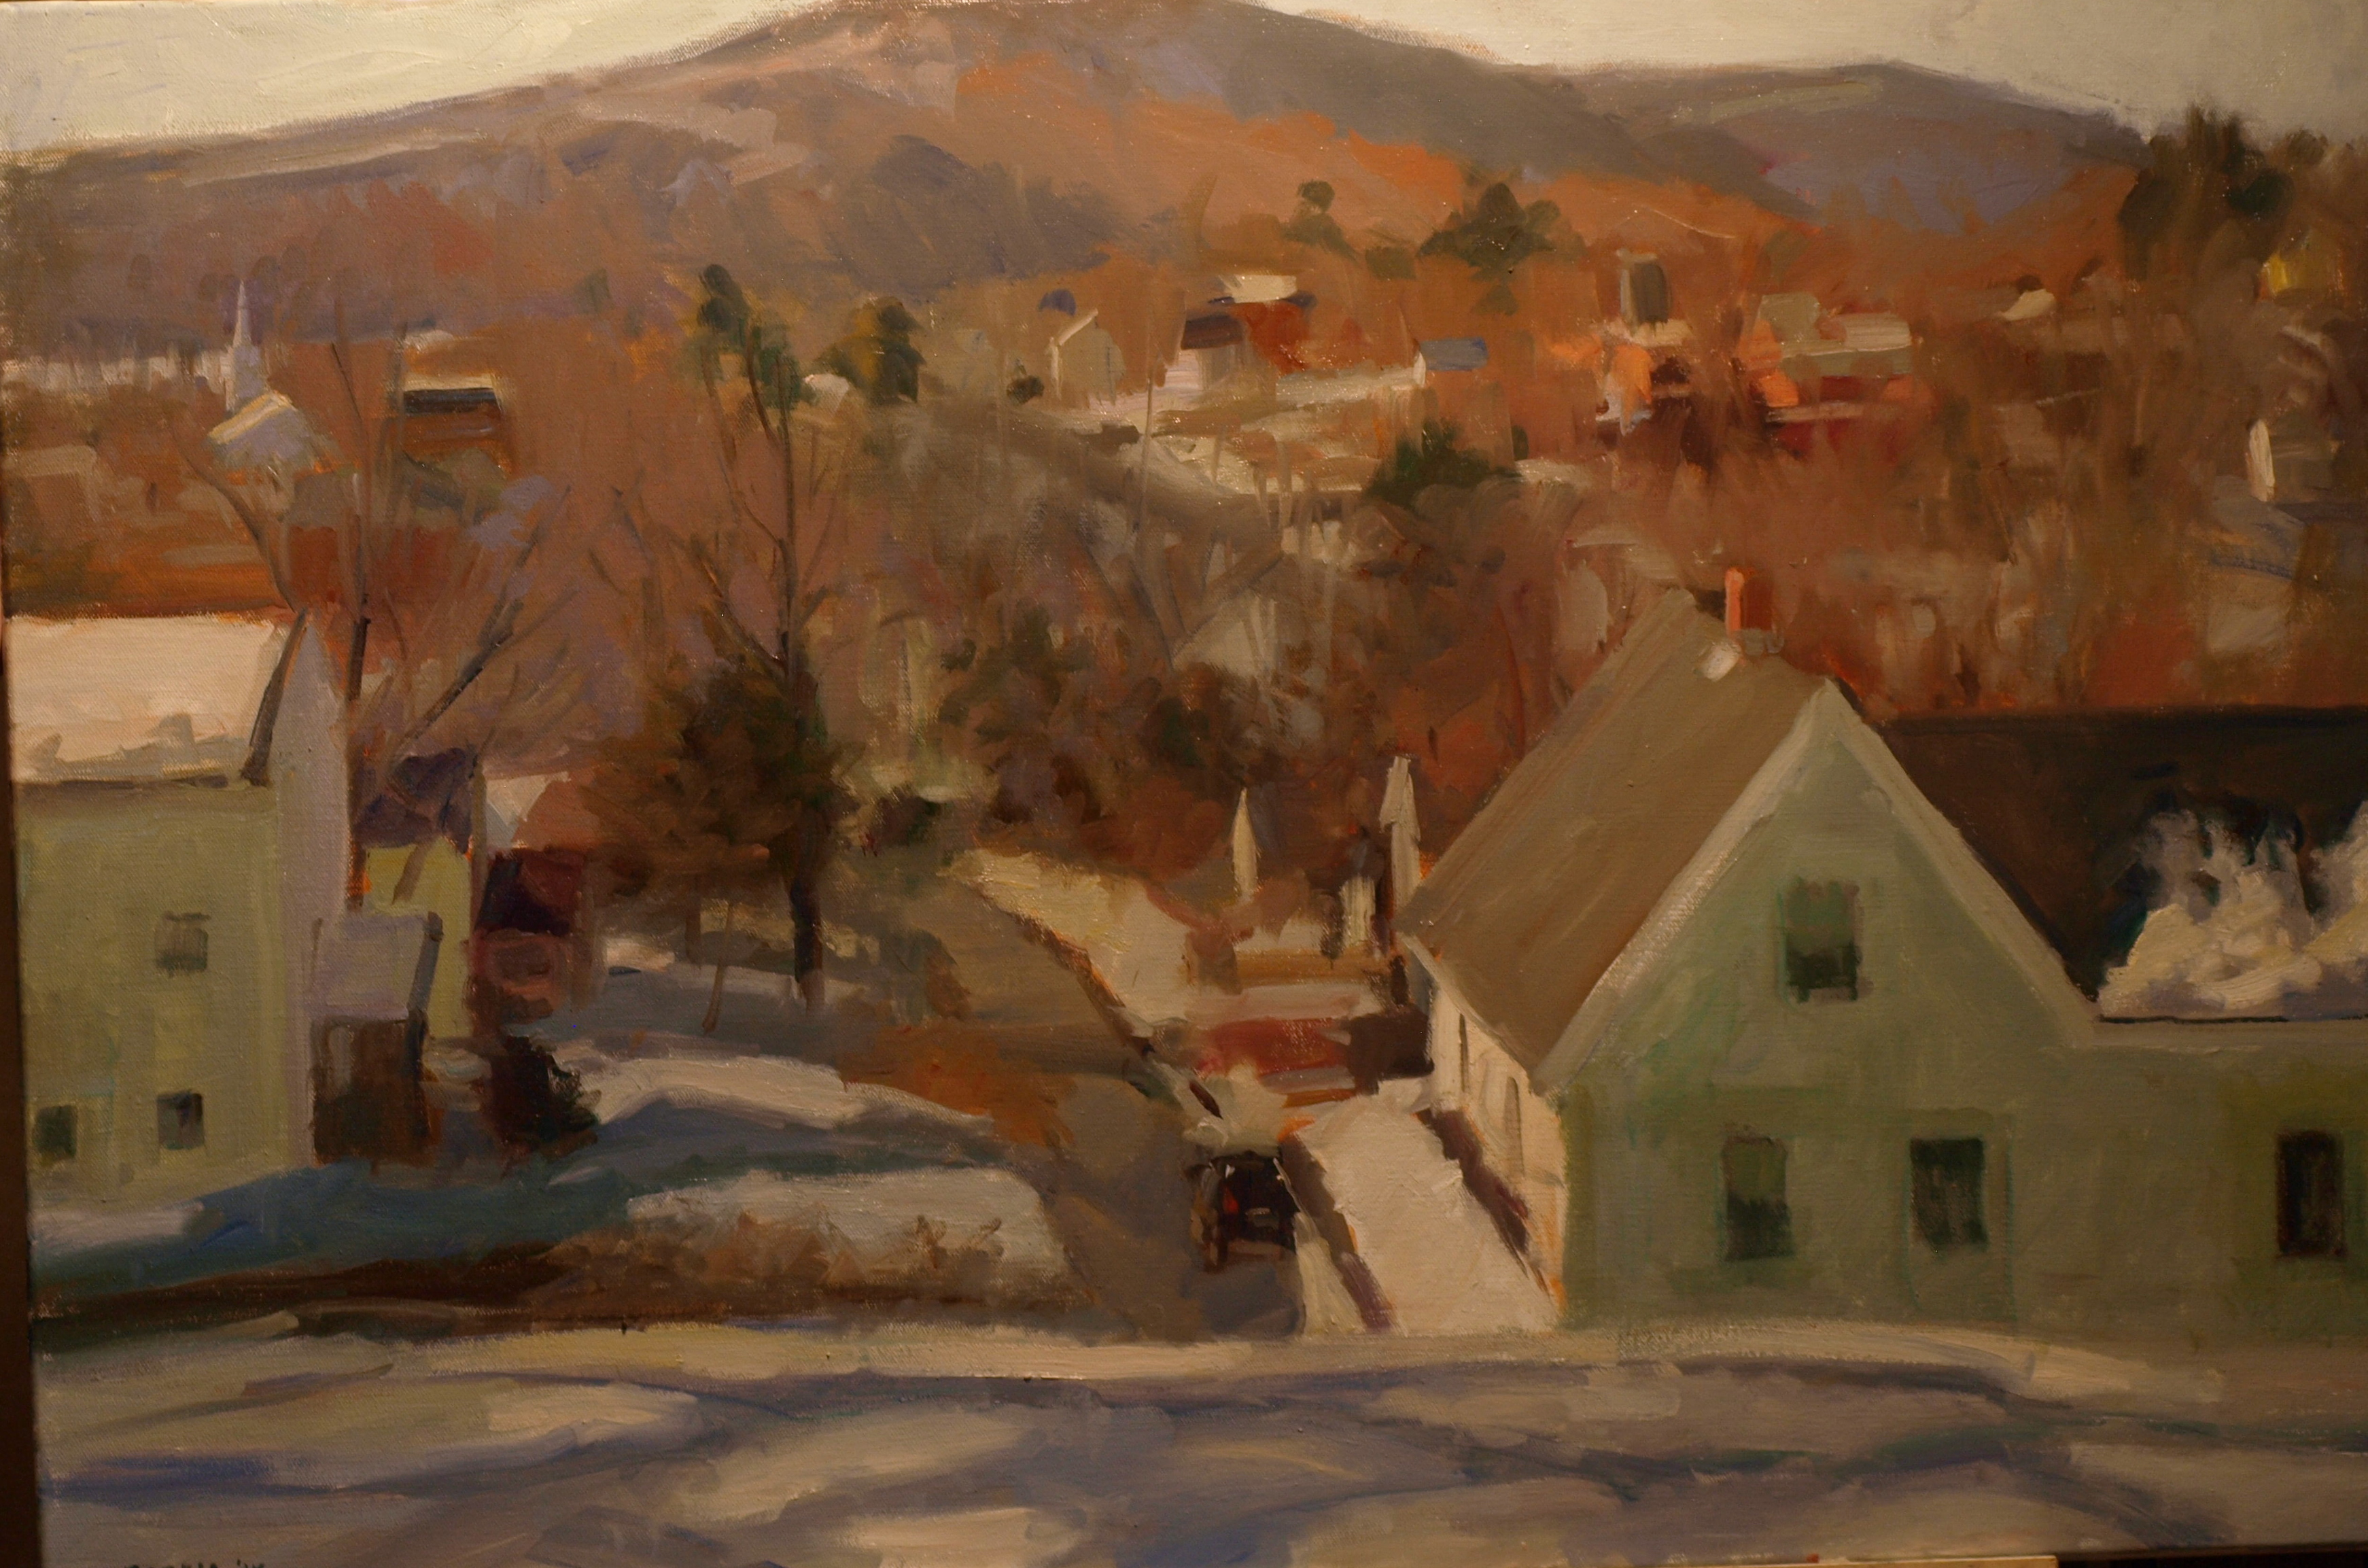 New Milford Hills, Oil on Canvas, 24 x 36 Inches, by Susan Grisell, $1500